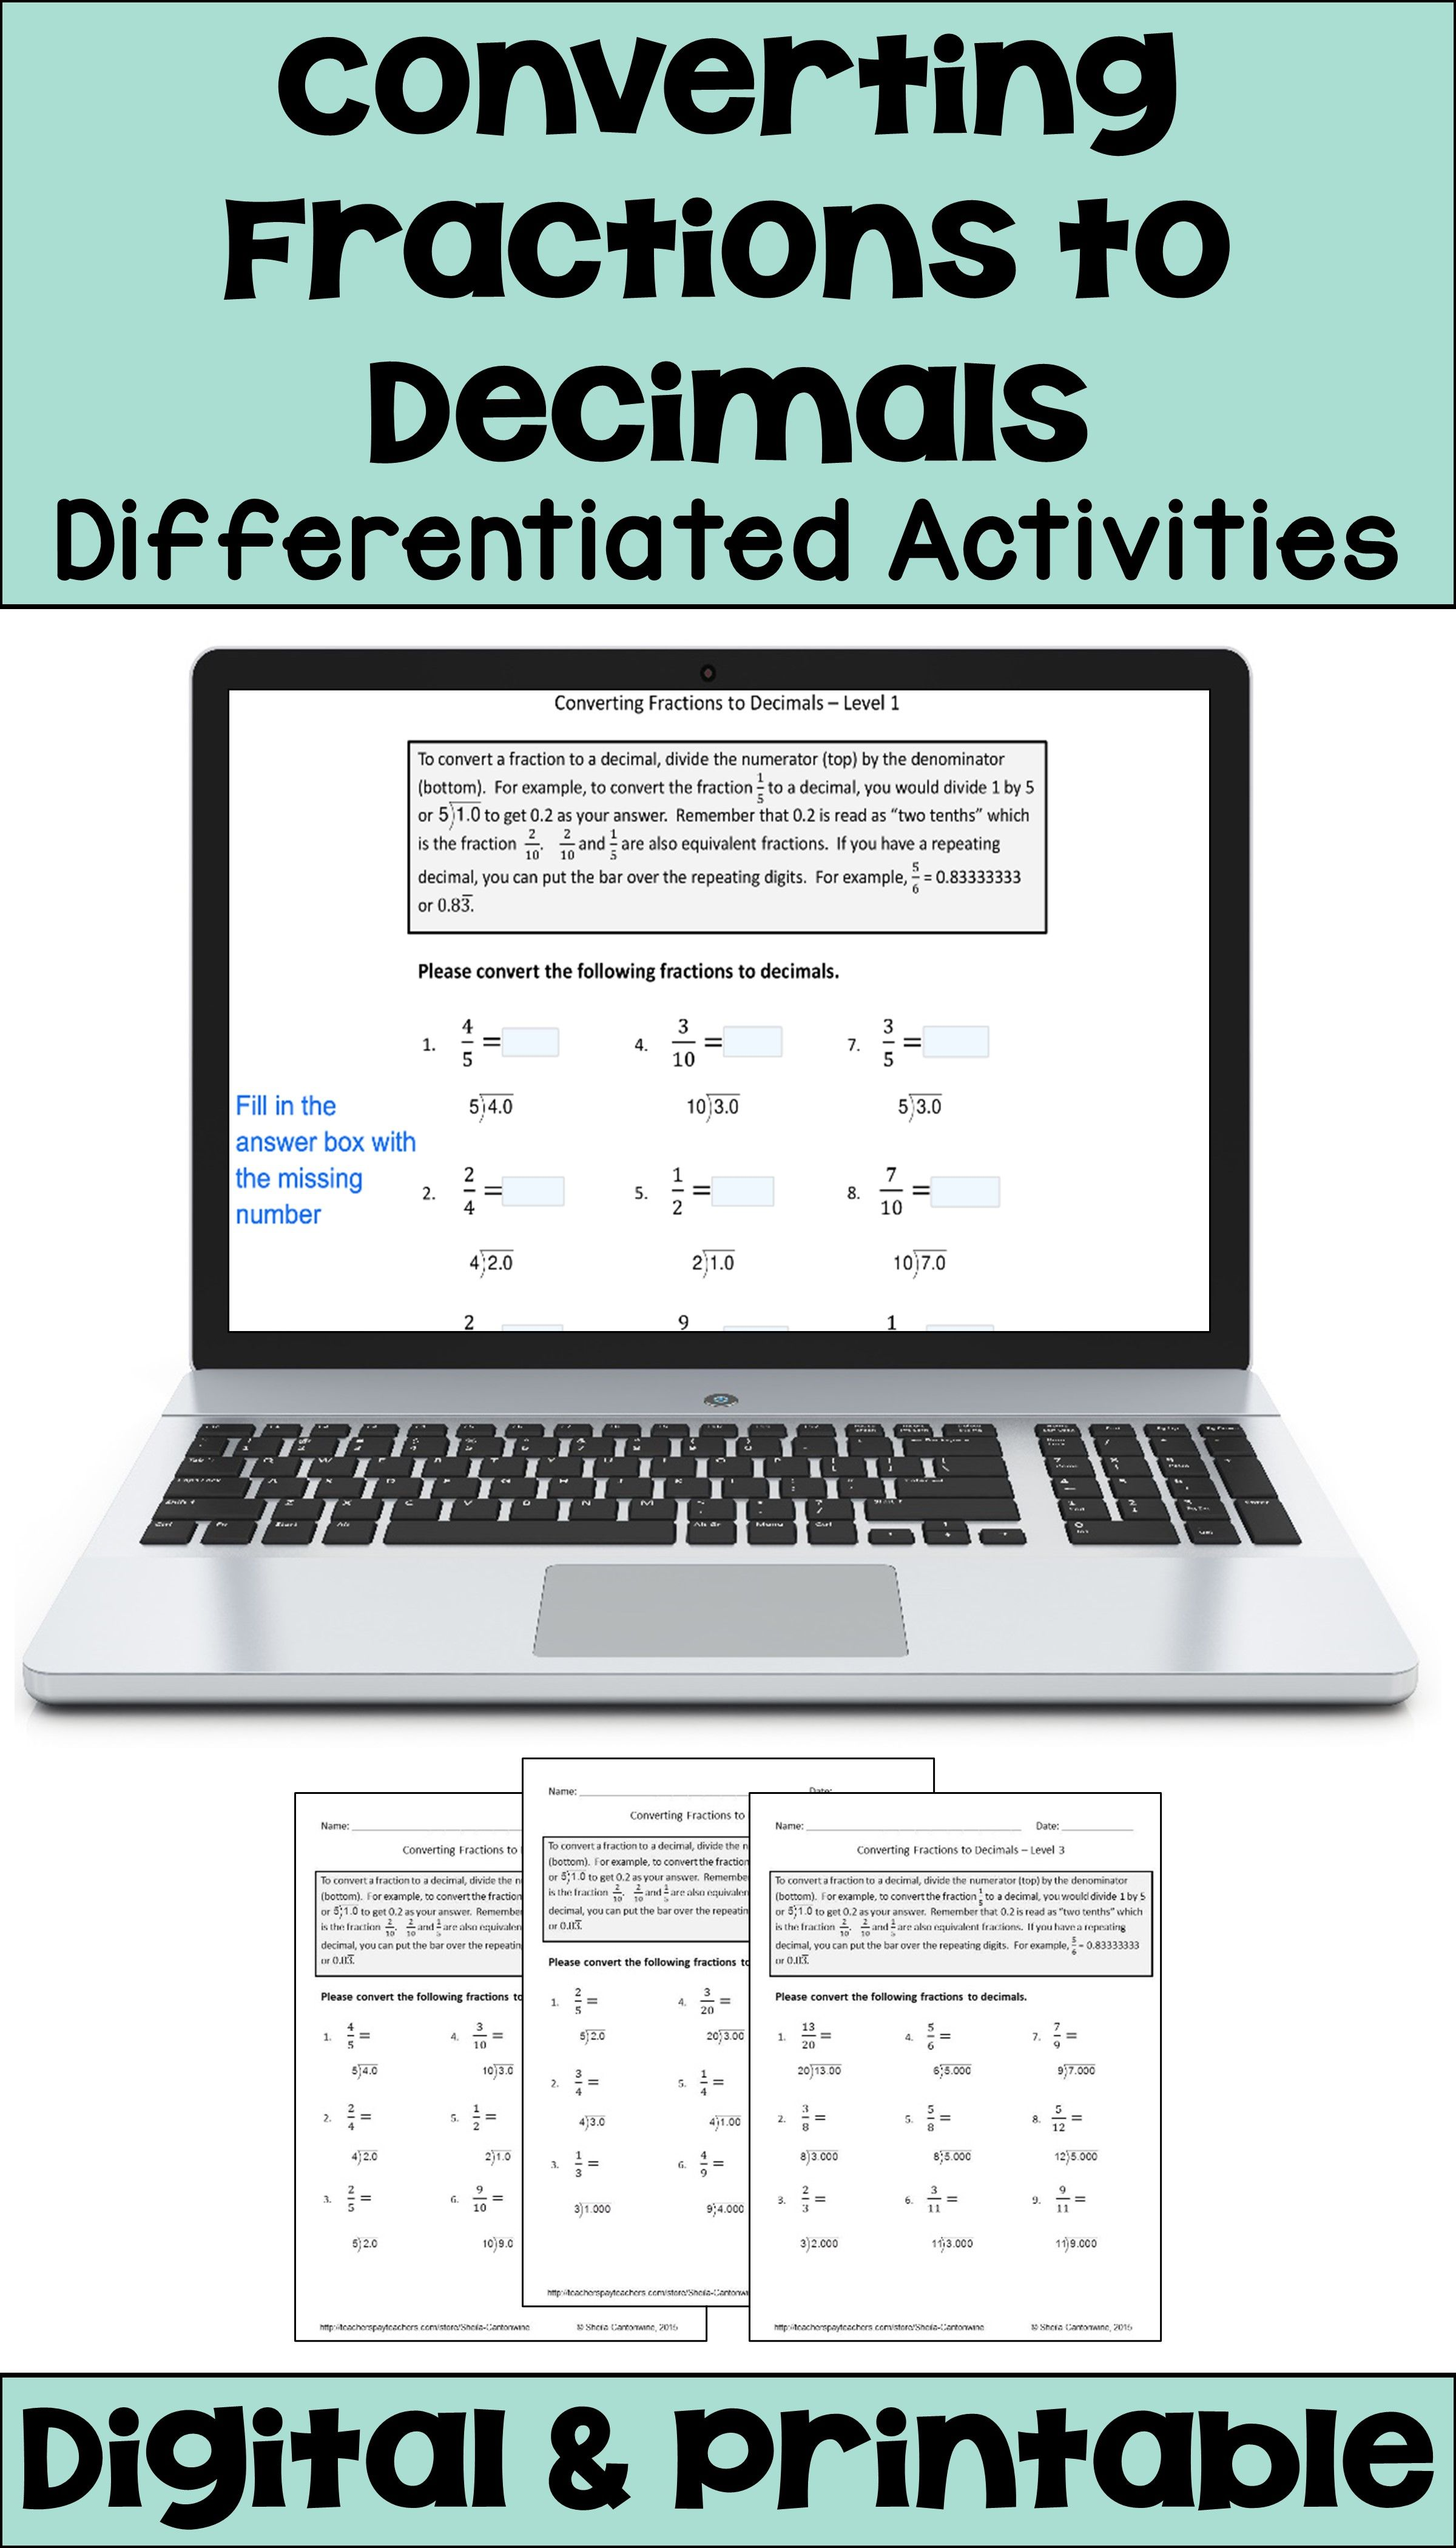 hight resolution of Converting Fractions to Decimals Differentiated Activities with Digital and  Printable Opti… in 2020   Converting fractions